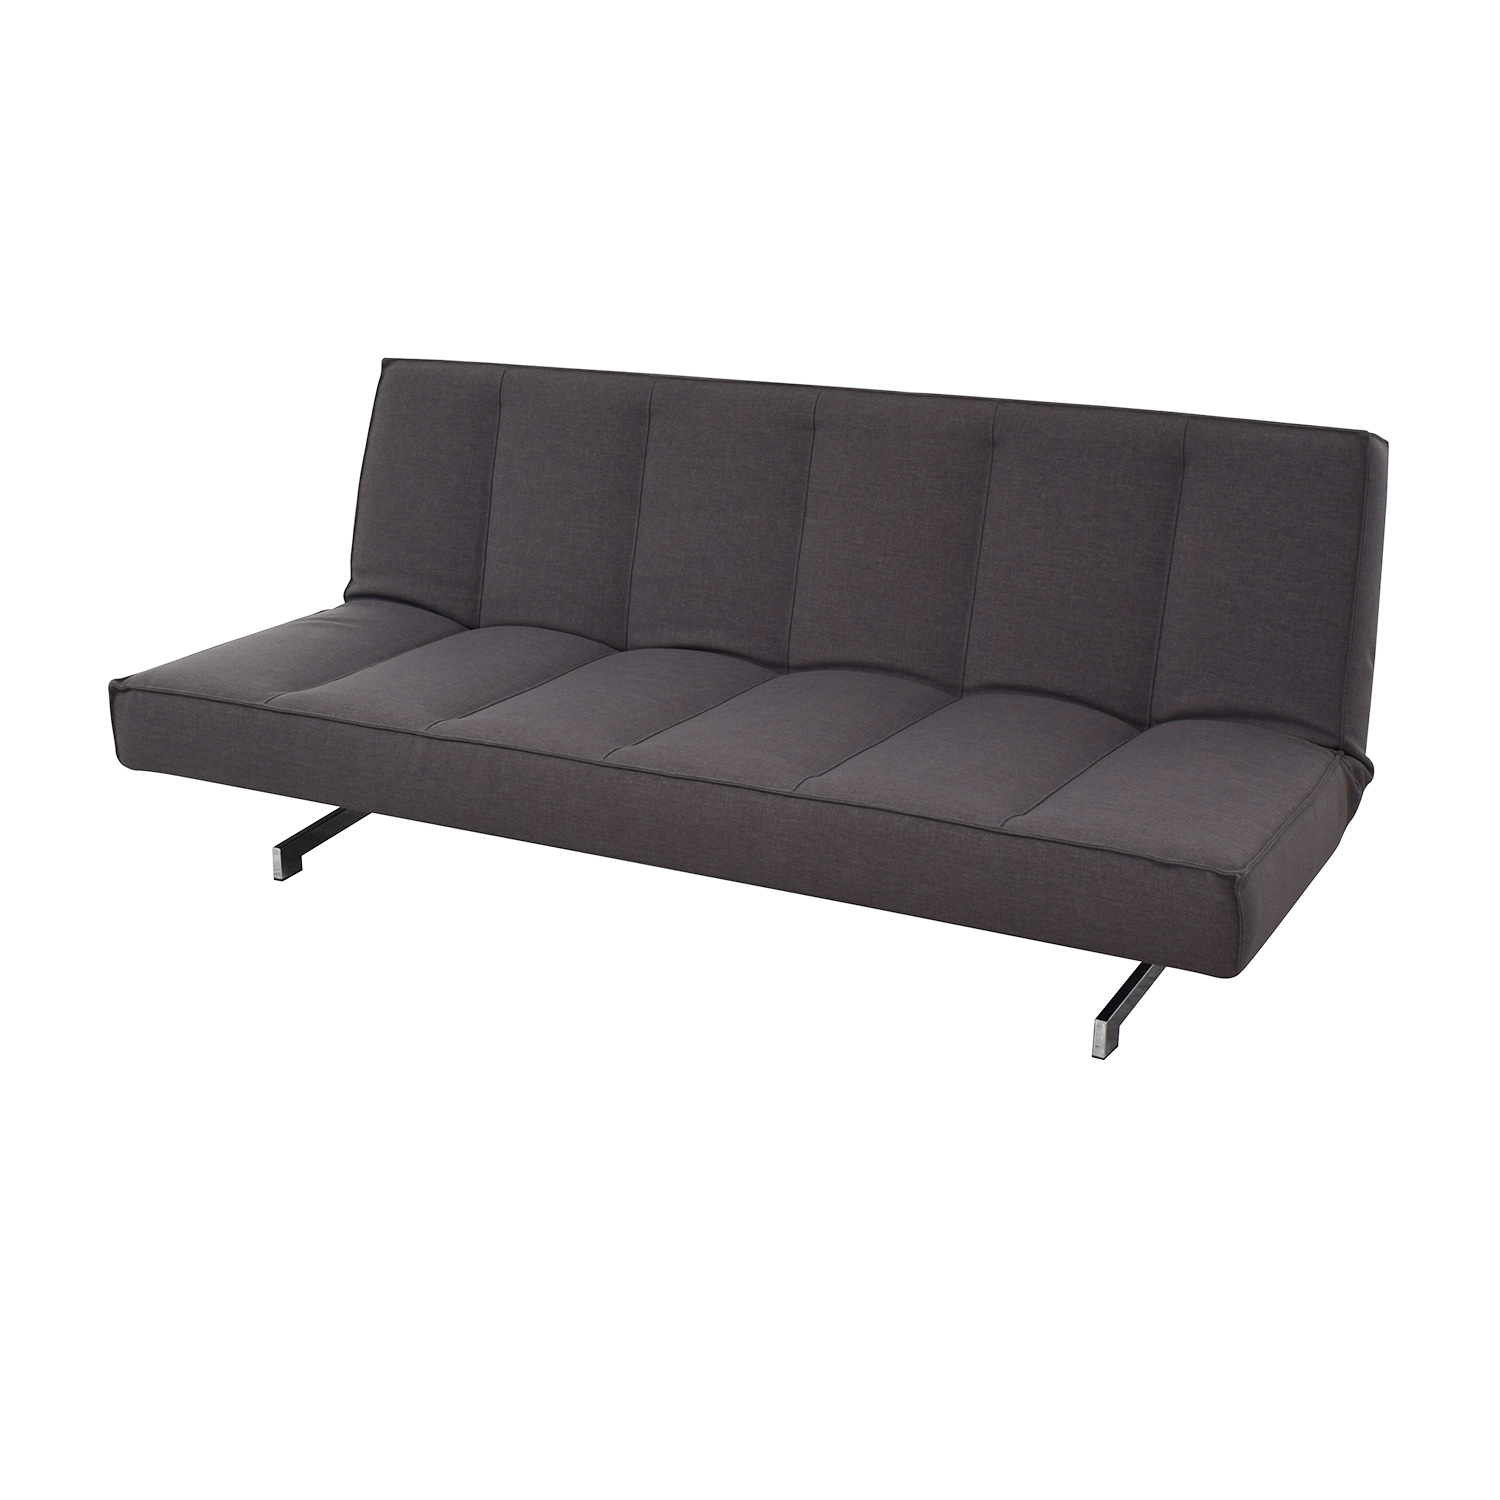 buy CB2 CB2 Flex Gravel Sleeper Sofa online